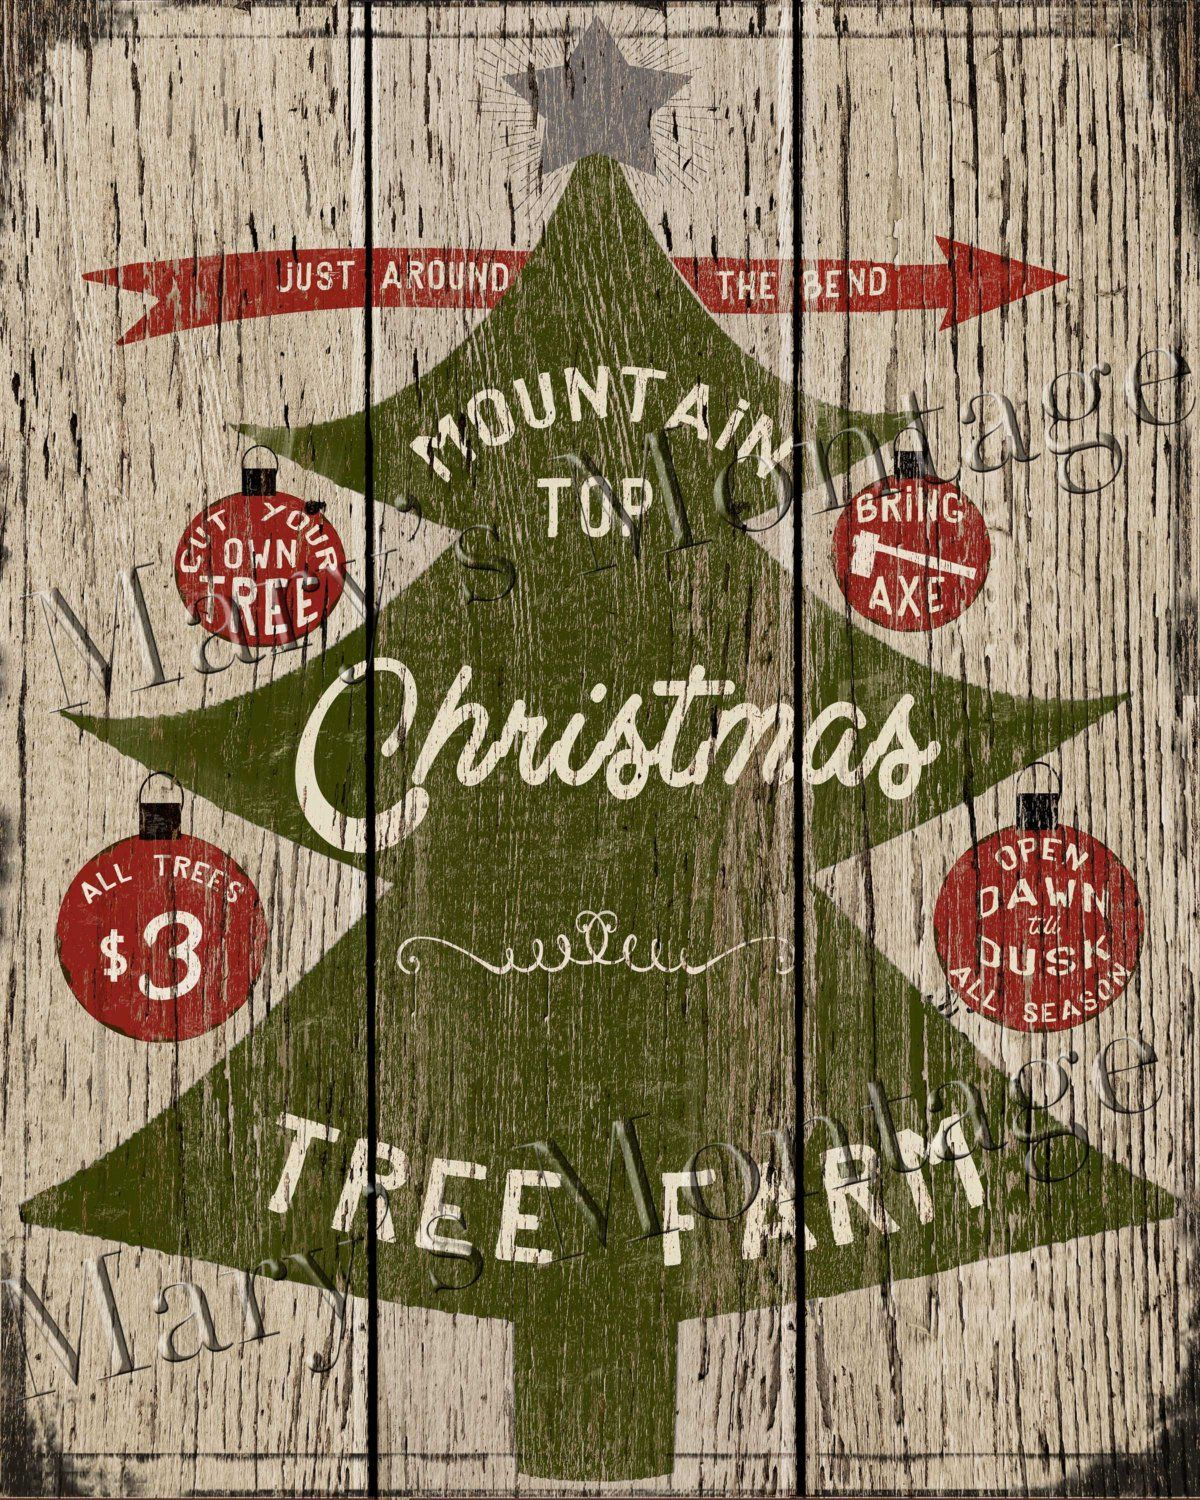 Country Pines Christmas Tree Farms: Christmas Trees Retro Style Sign, 8x10, Printable Download